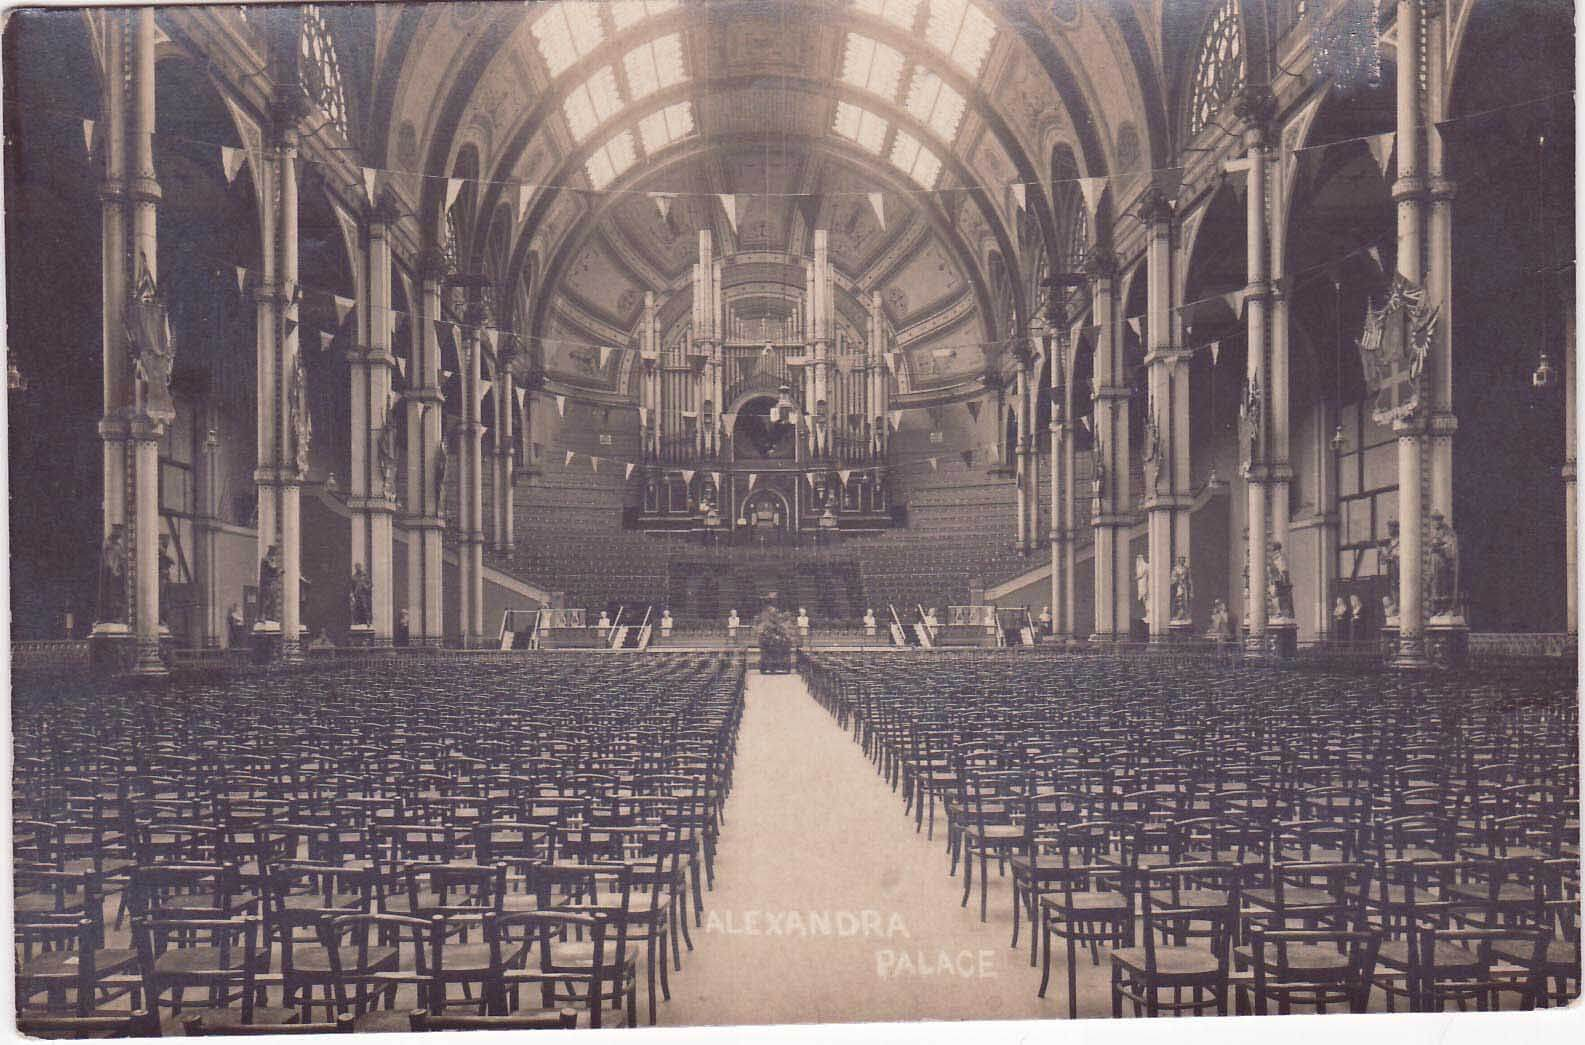 alexandra palace history resources